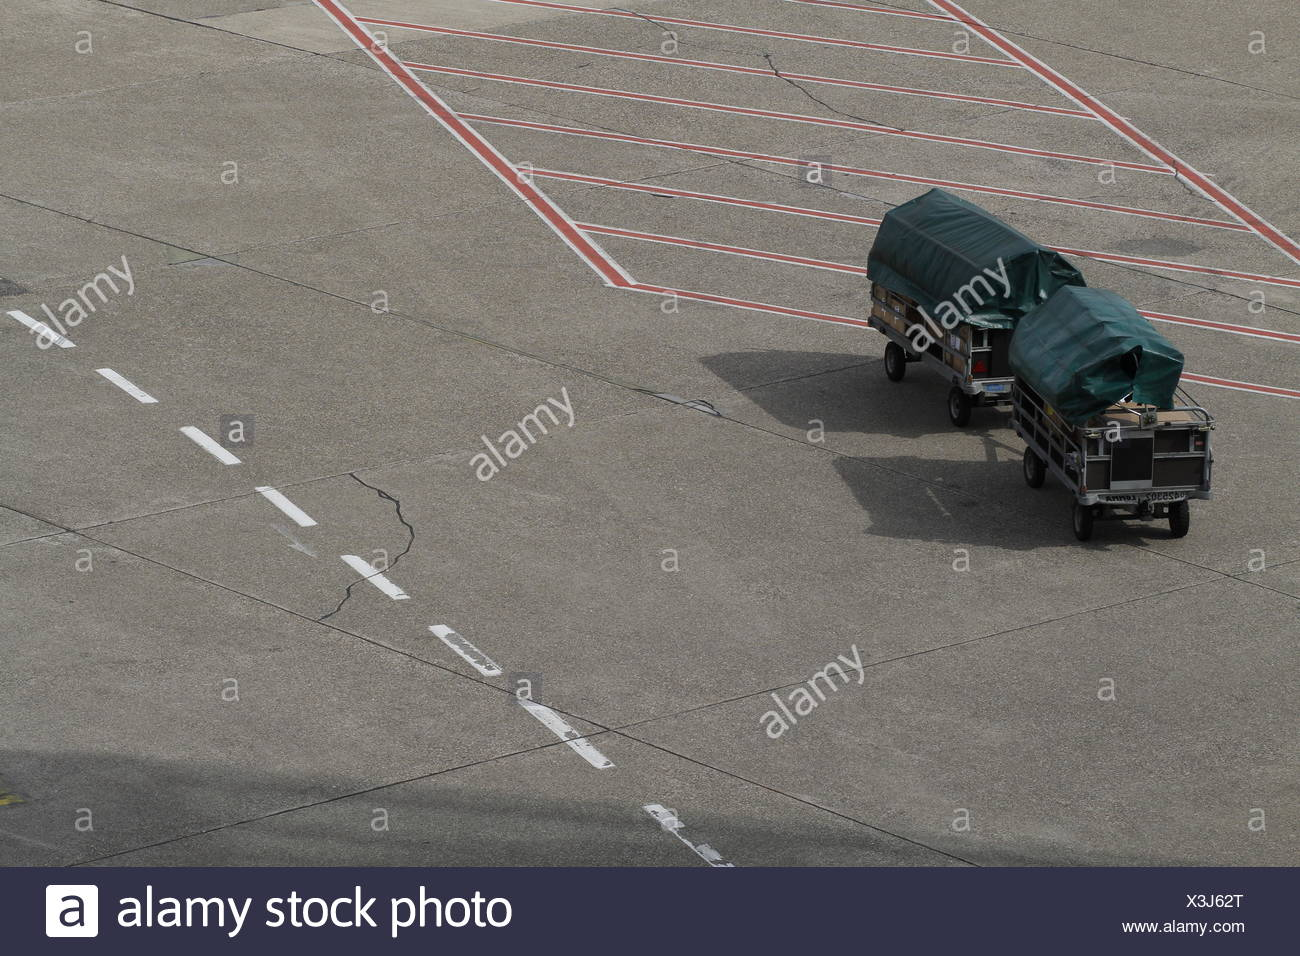 High Angle View Of Trailers In Parking Lot - Stock Image